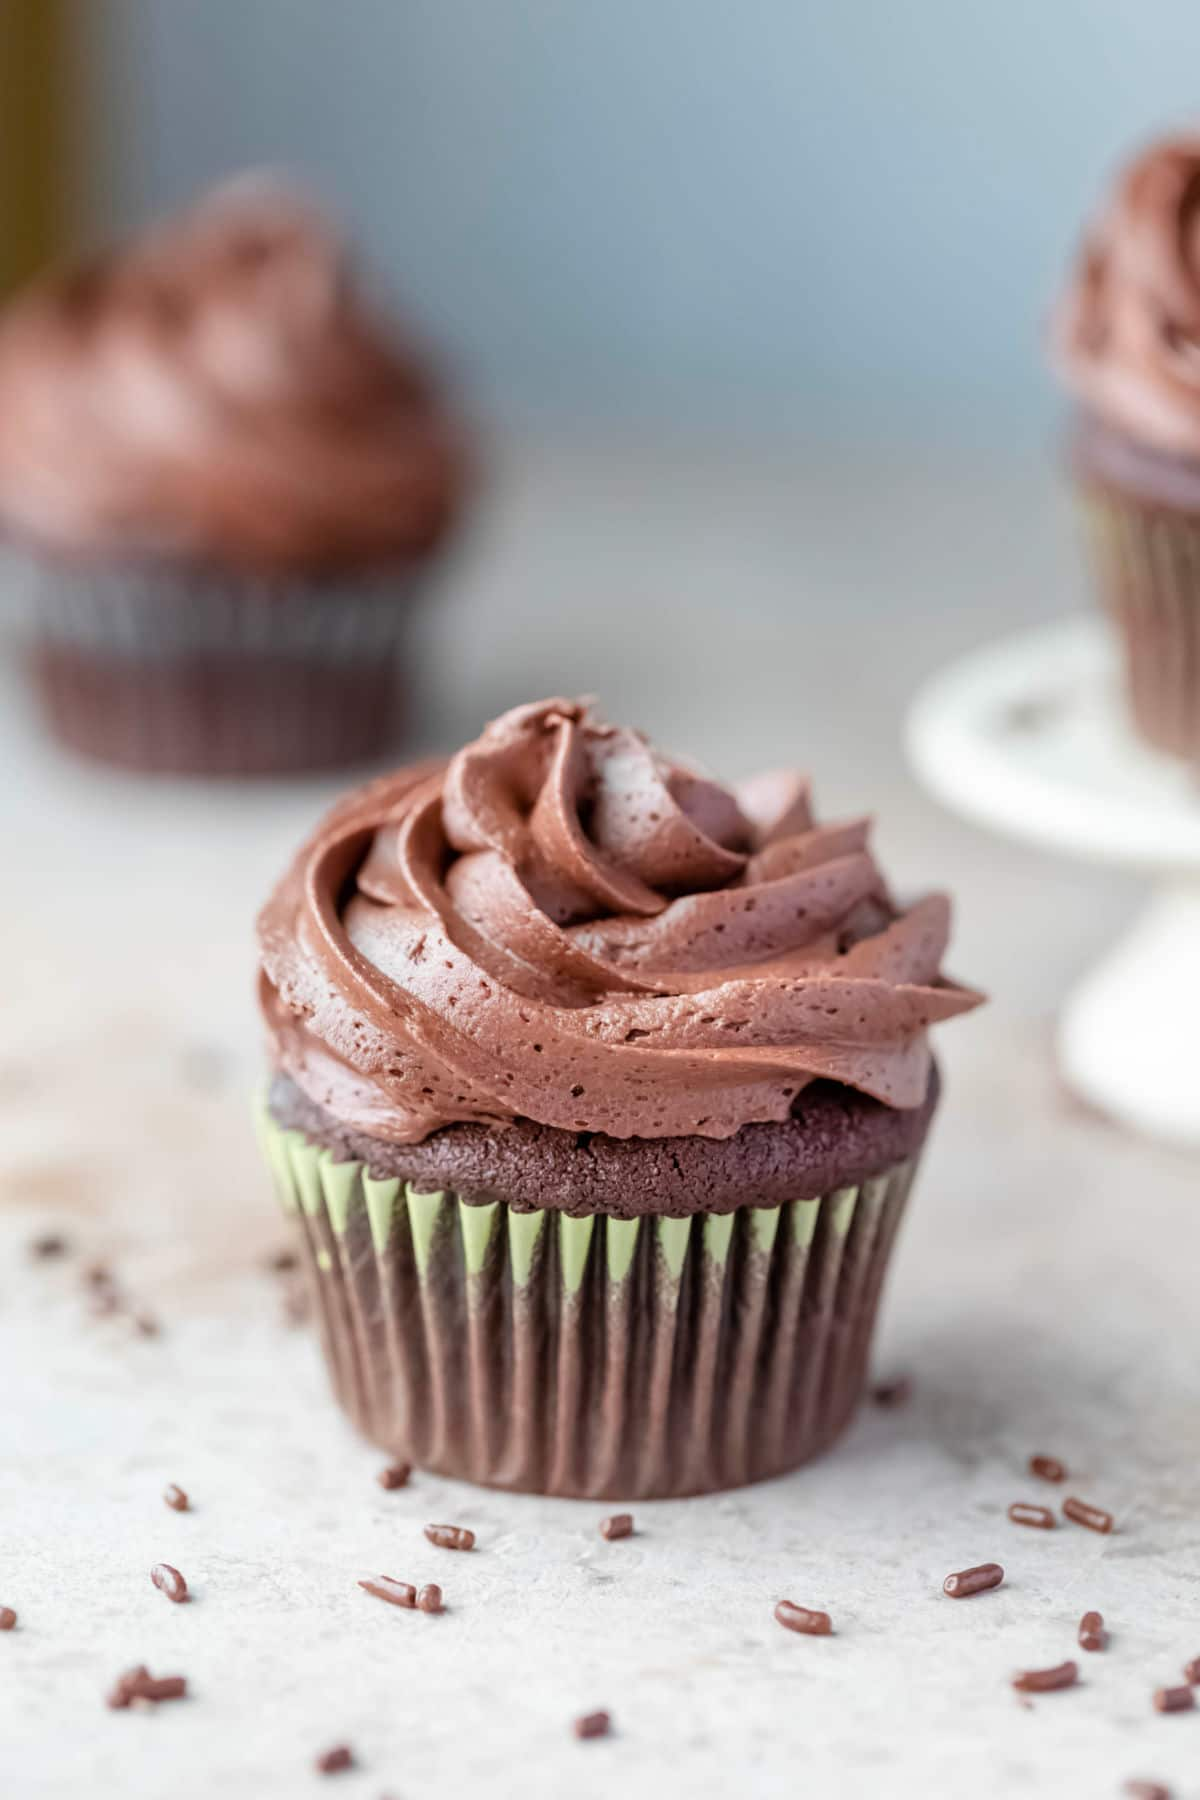 A chocolate cupcake topped with a low swirl of chocolate buttercream frosting.